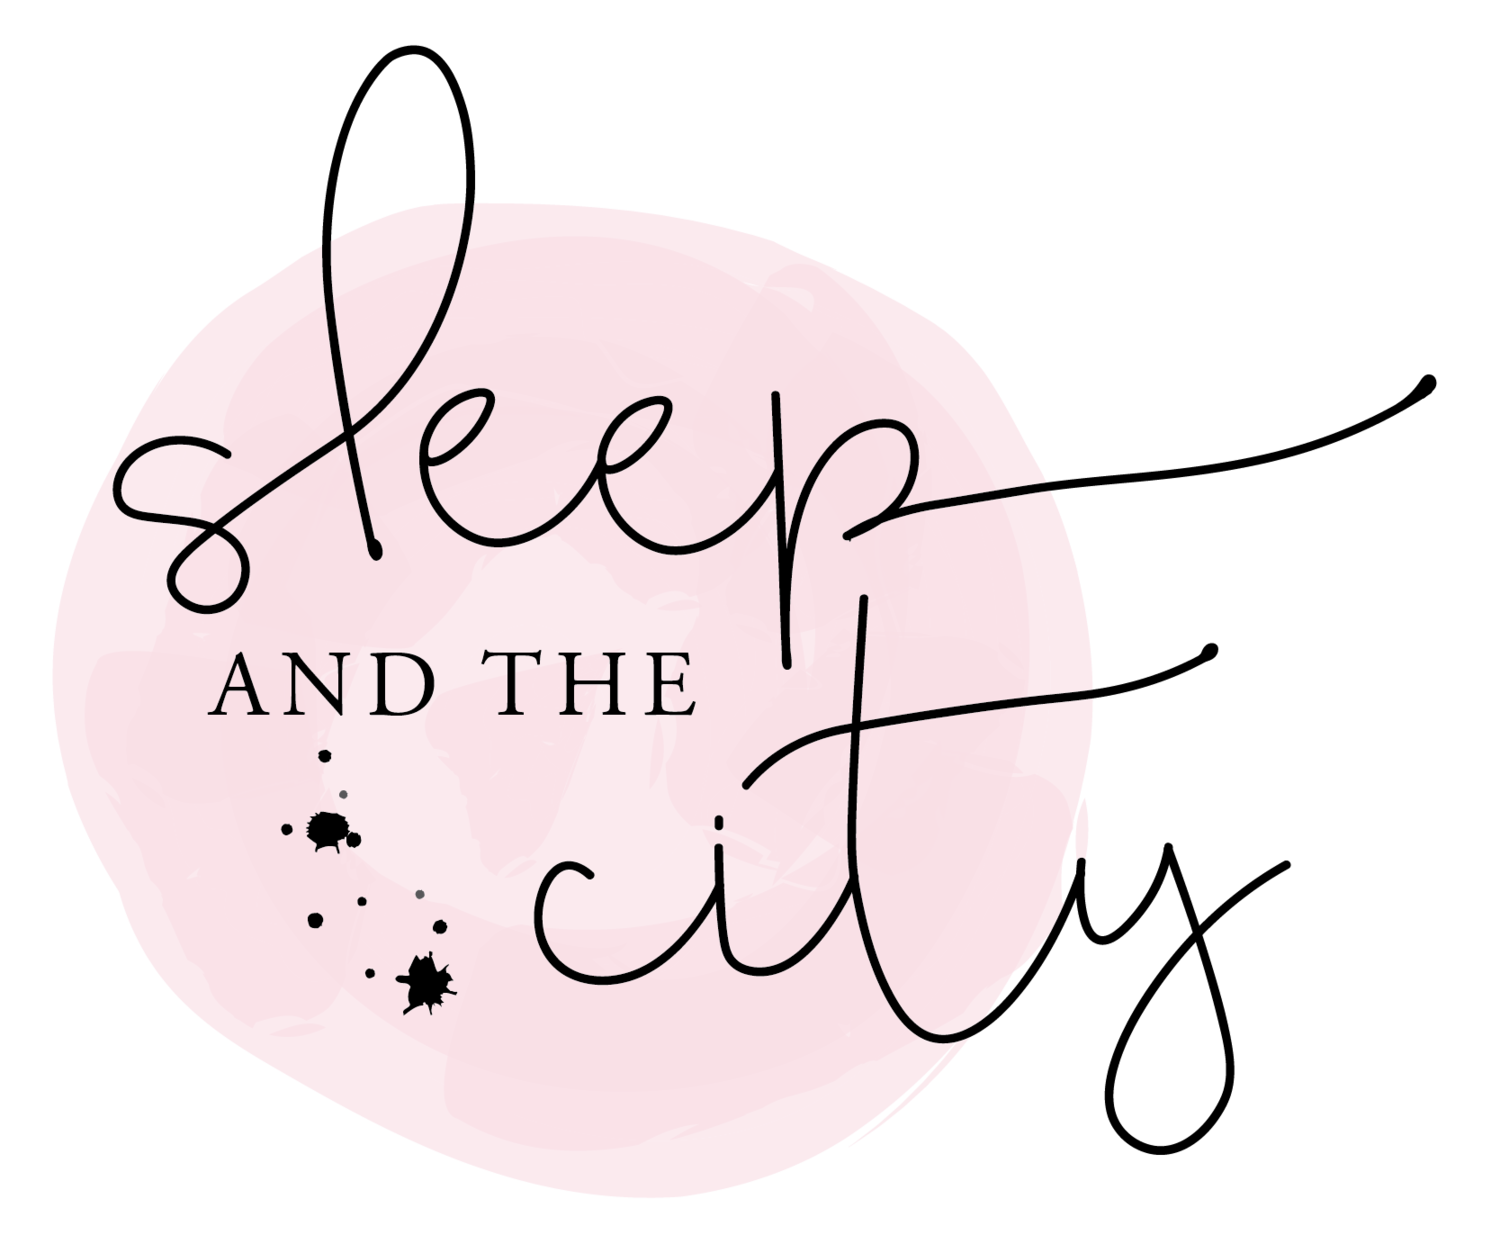 Sleep and the City